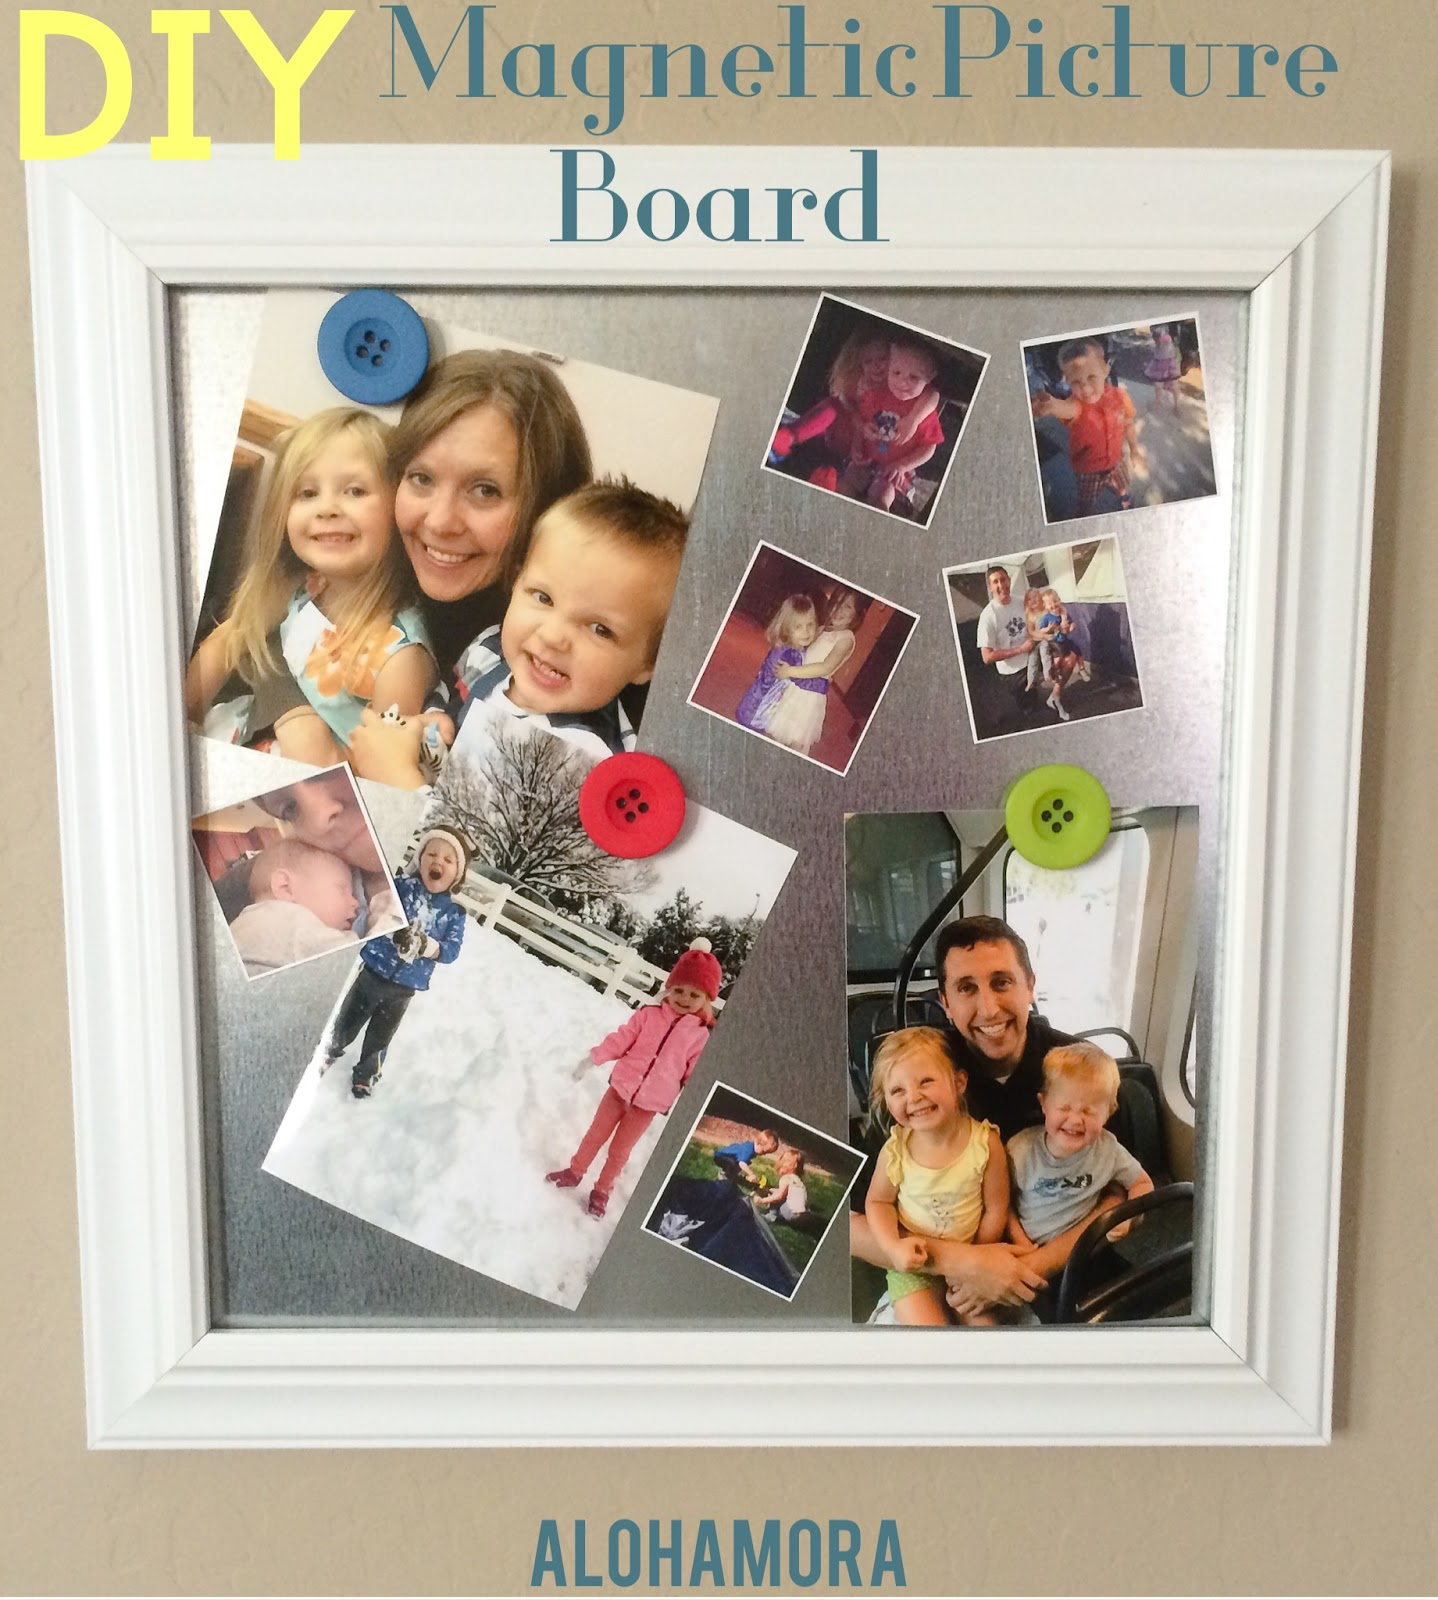 DIY Magnetic Picture Board.  Easy and Fast to make, and can be made in 10 minutes for less than $20.  These magnetic picture boards are a great and fun way to show pictures that can be easily rotated.  Alohamora Open a Book http://www.alohamoraopenabook.blogspot.com/